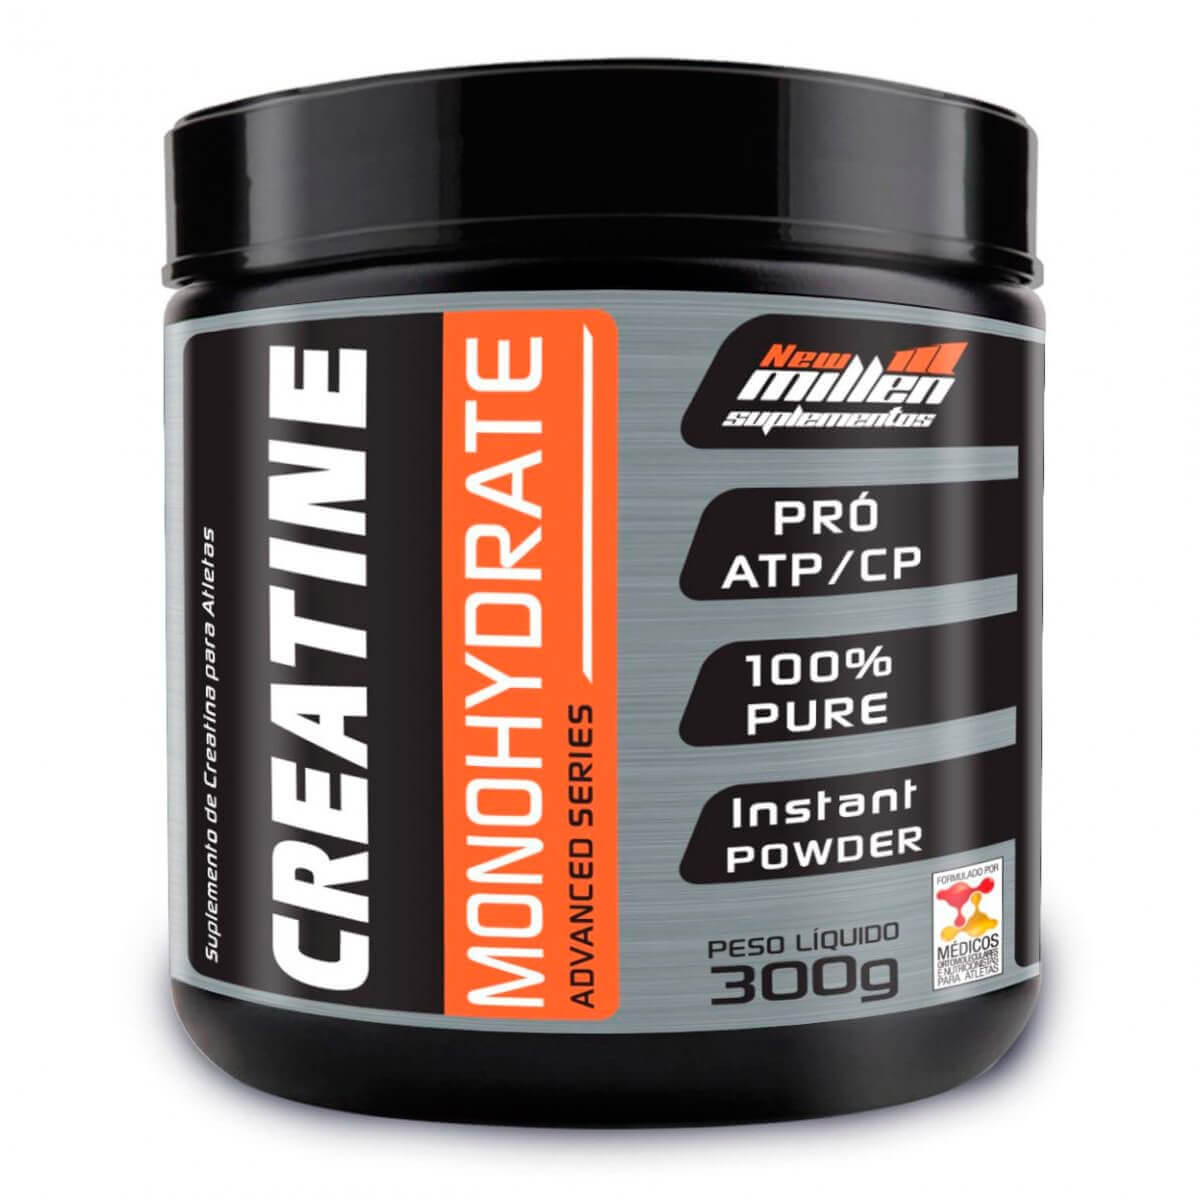 Creatine Monohydrate New Millen - 300g